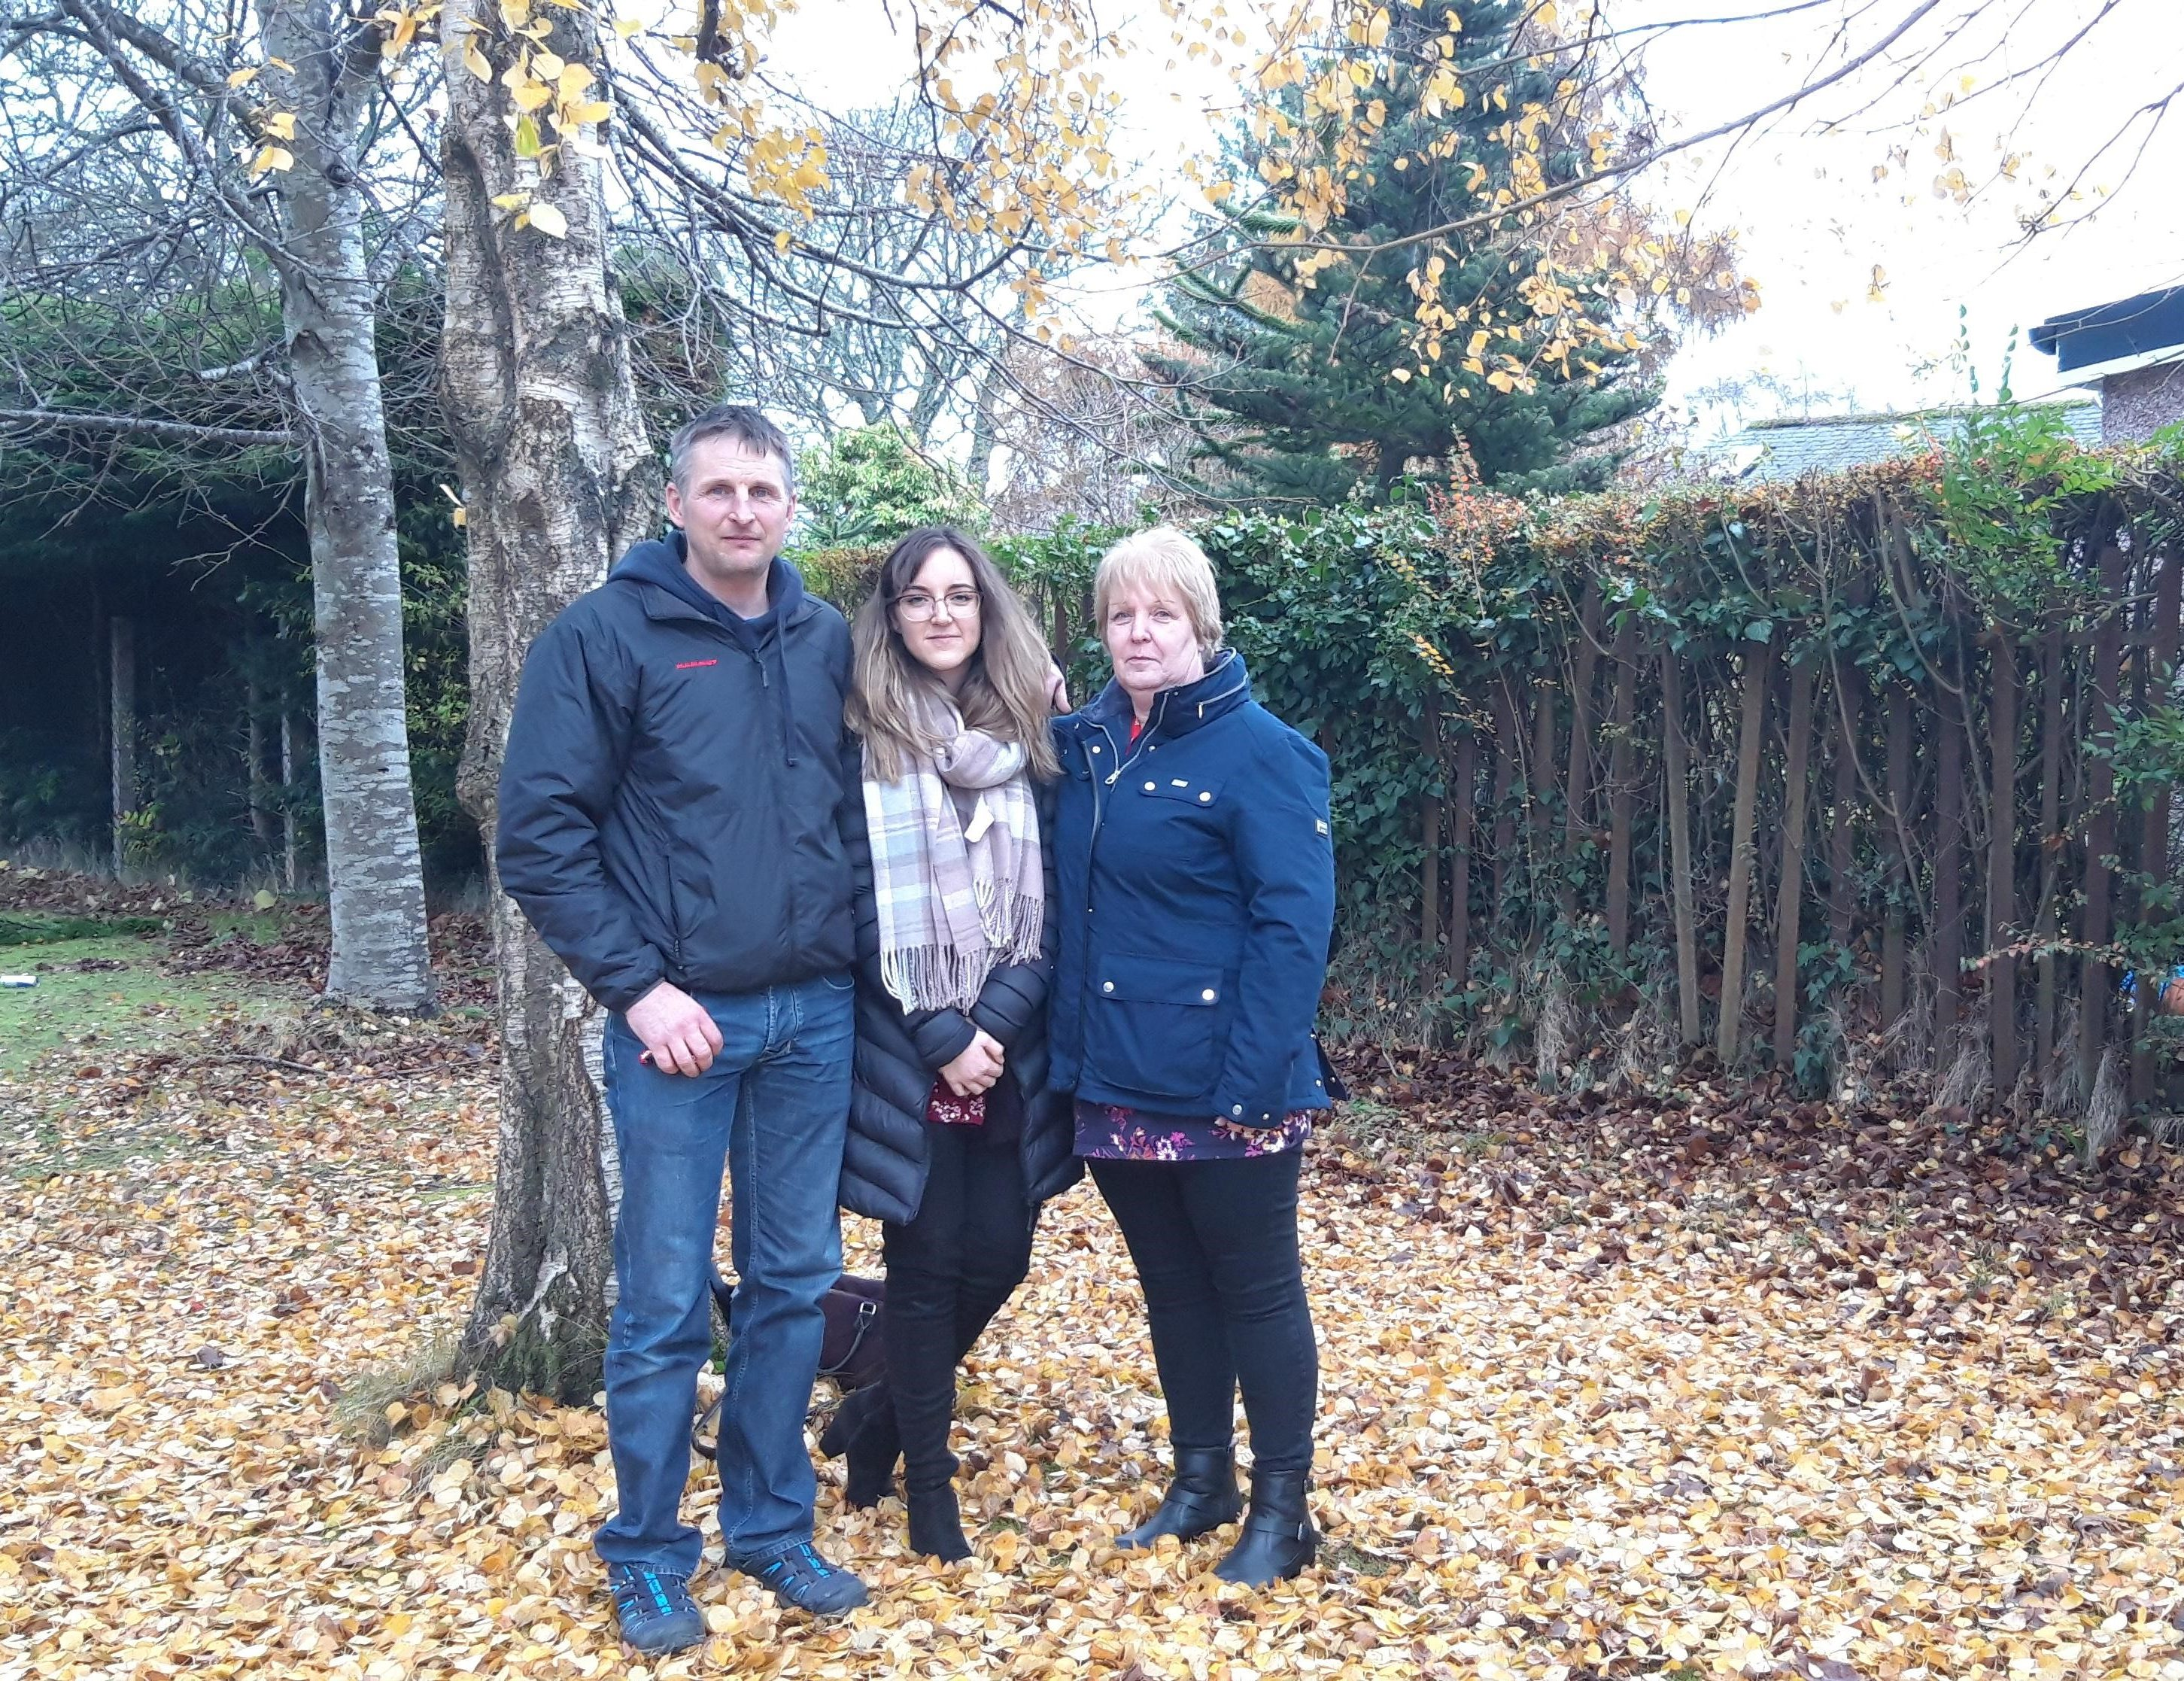 Neil Scott-Moncrieff, 45, Emma Beaton, 22, and Joan Beaton, 57 from Flodigarry